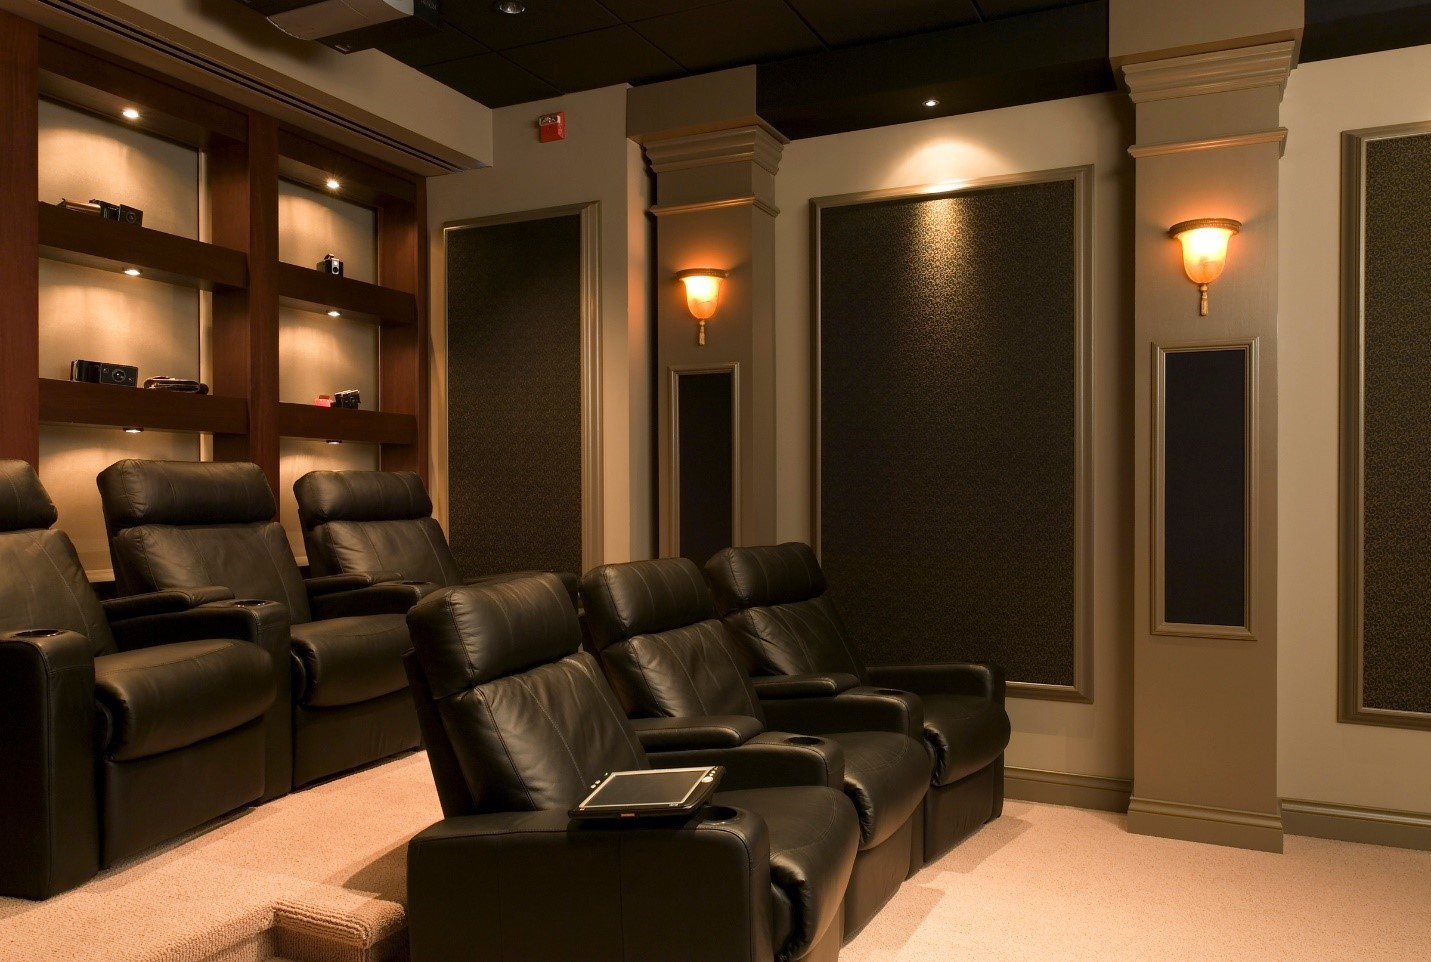 Get the Best Sound in Your Home Theater Installation